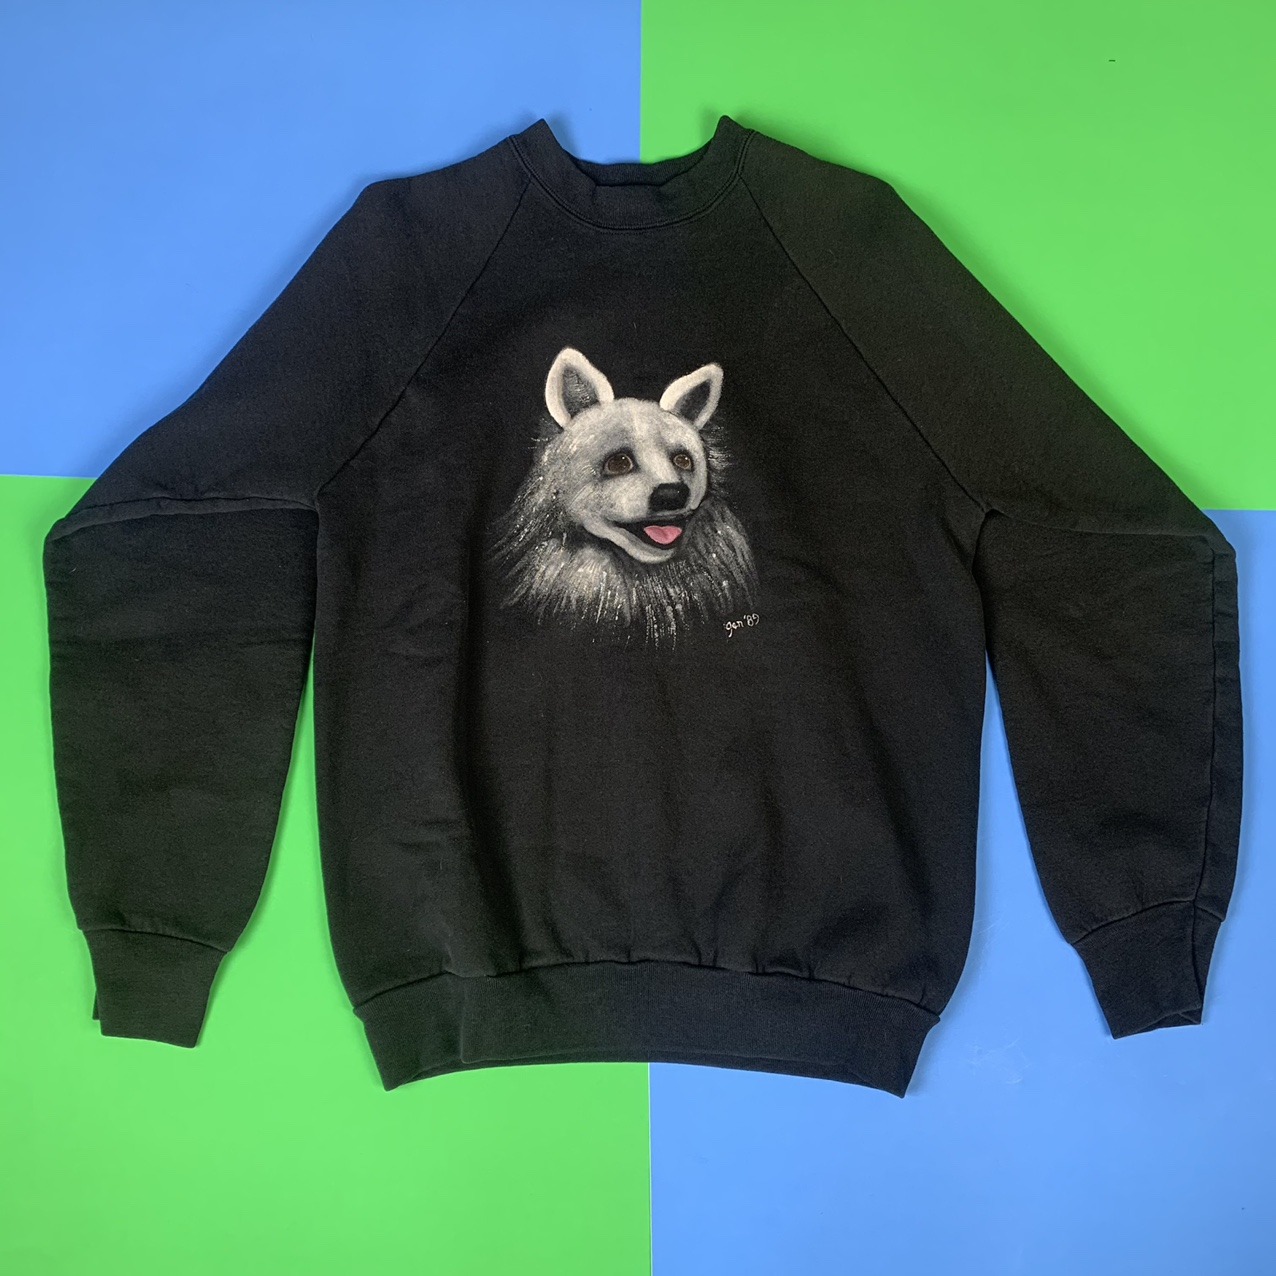 Product Image 1 - Vintage 1989 handpainted animal graphic